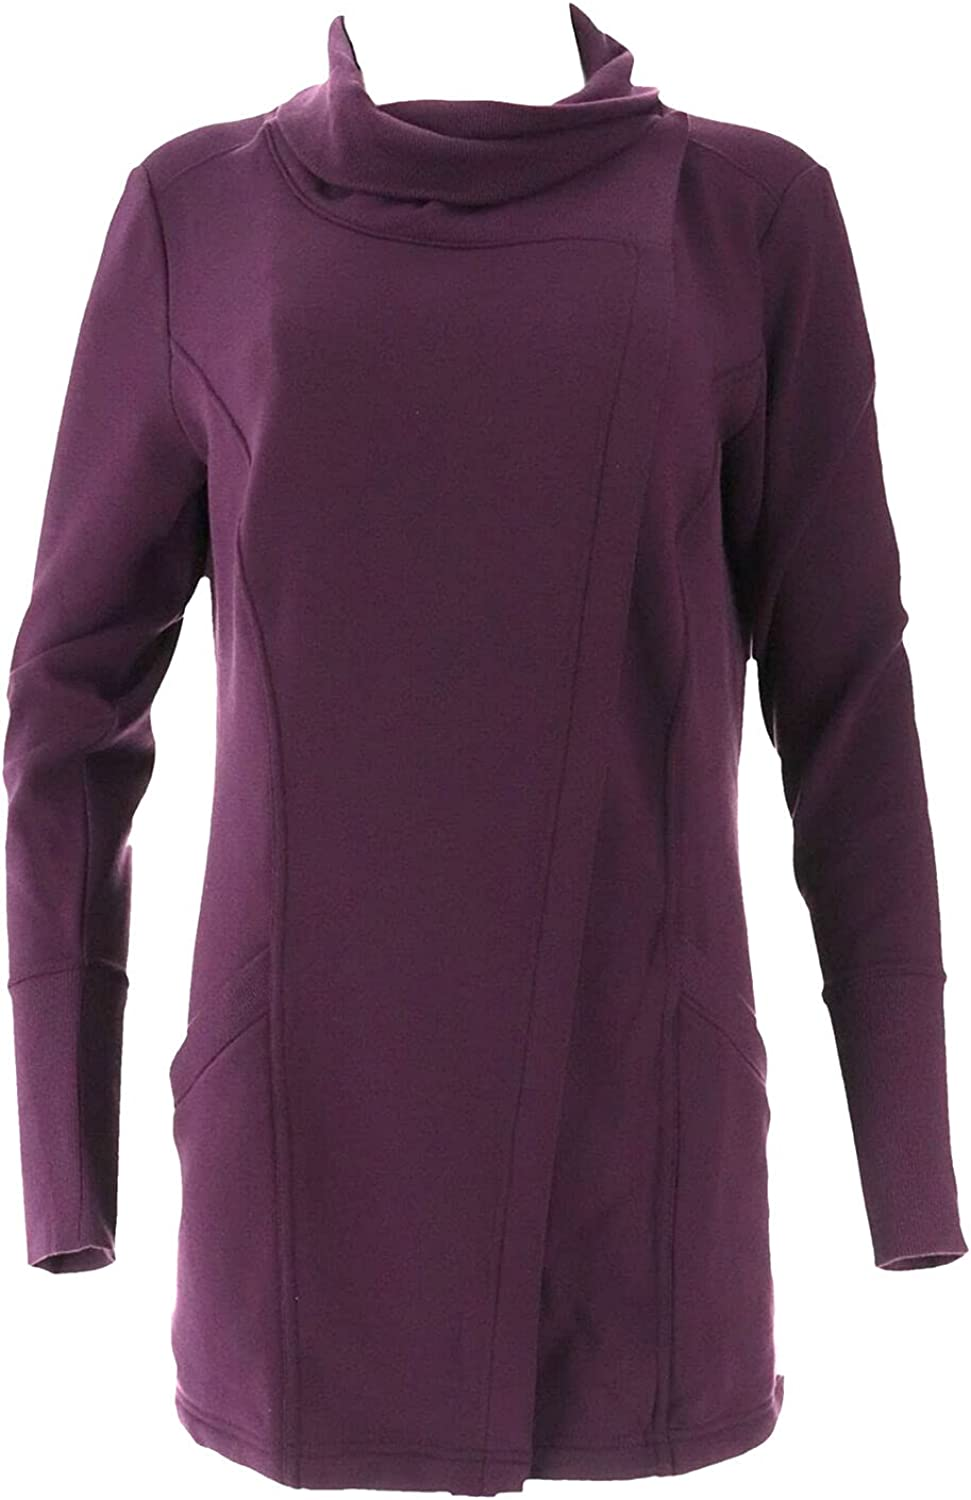 Susan Lucci Collection Max 46% OFF Cowl Neck SLV Max 67% OFF Jacket A343567 Long Plum